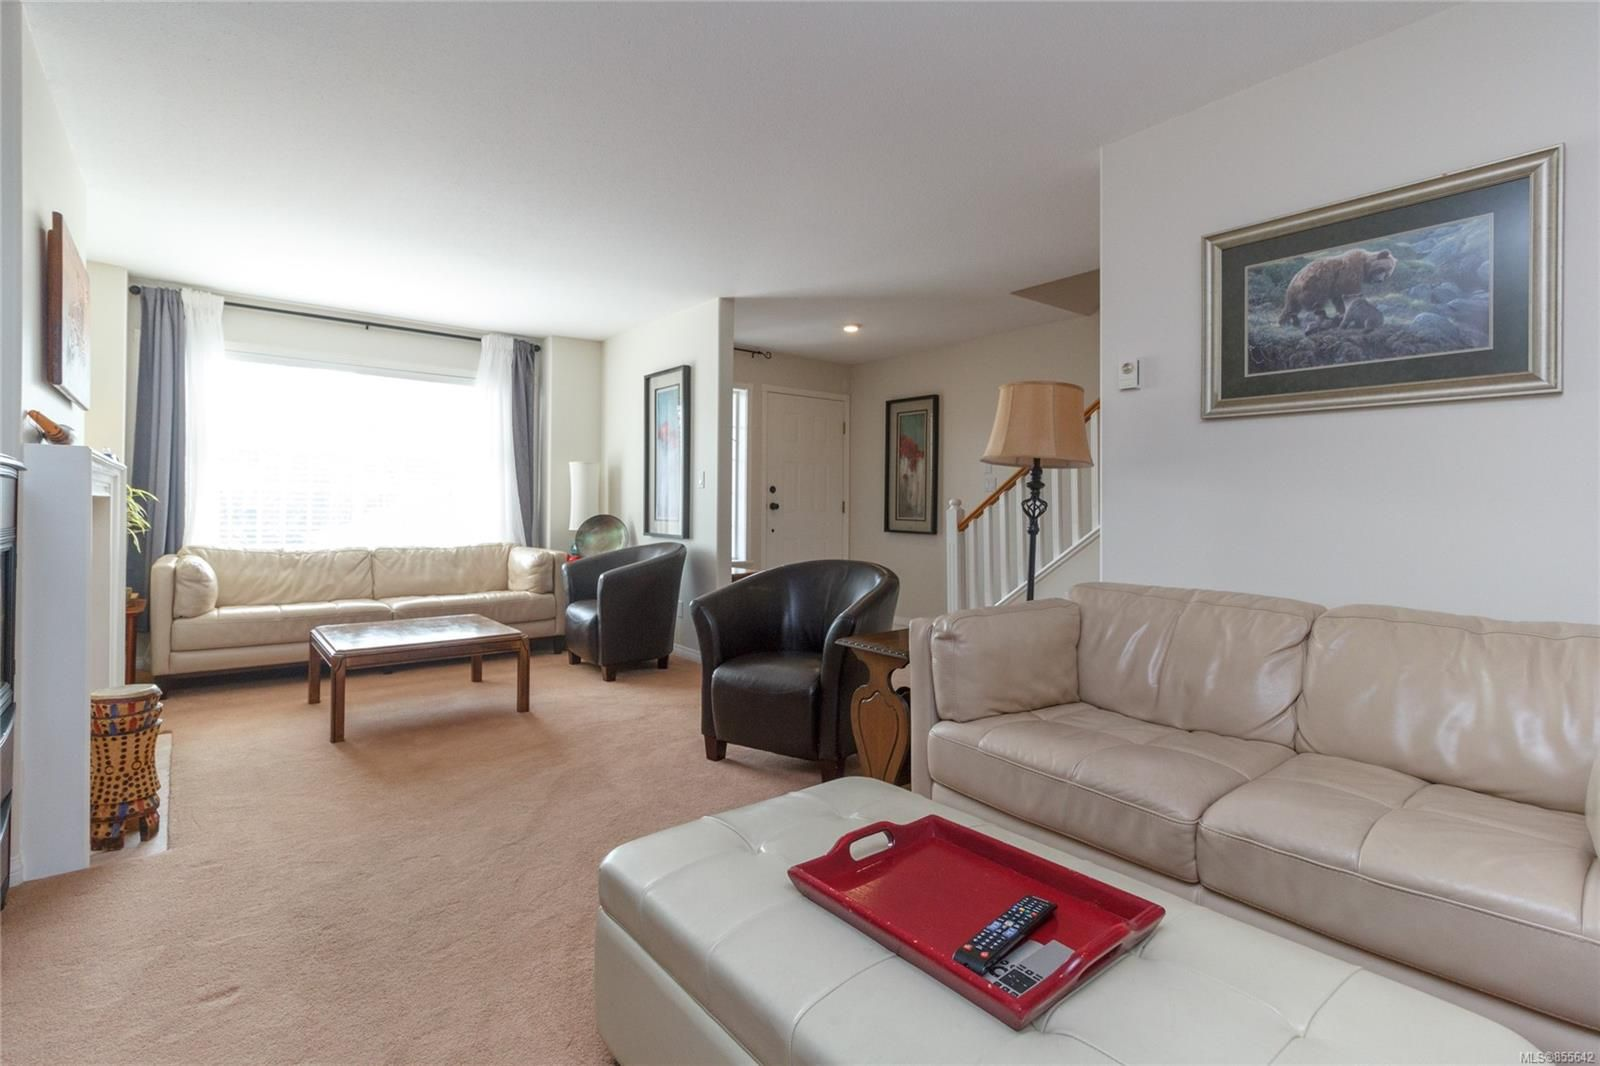 Photo 7: Photos: 52 14 Erskine Lane in : VR Hospital Row/Townhouse for sale (View Royal)  : MLS®# 855642